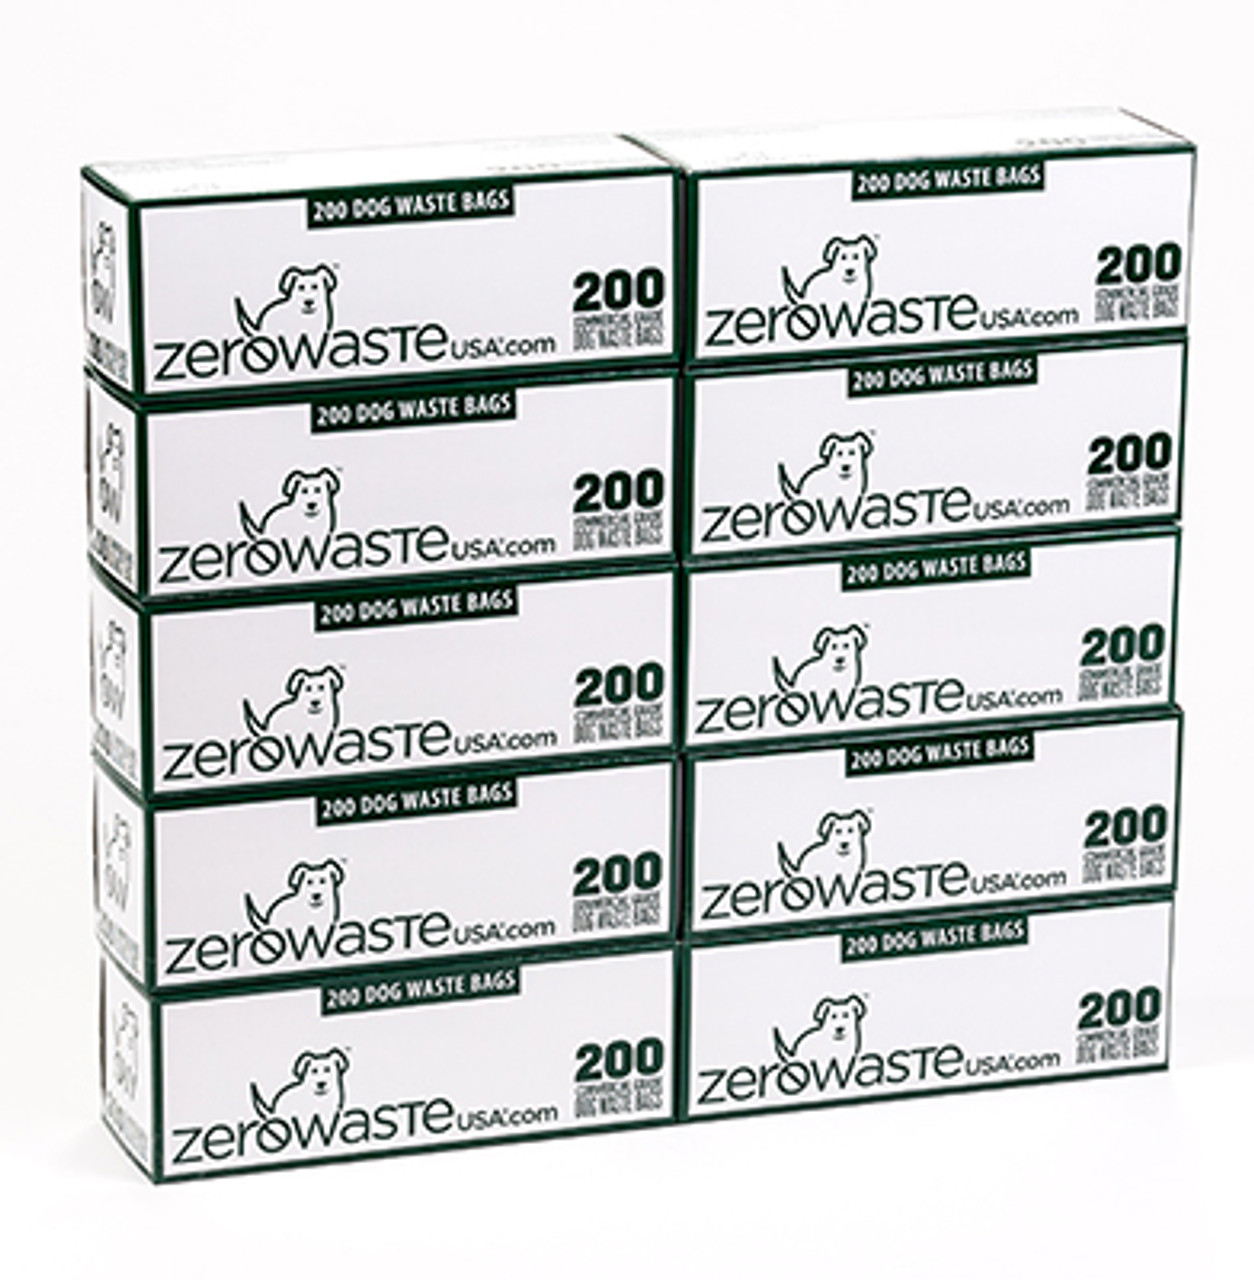 Roll Bags Case of 2000 Bags